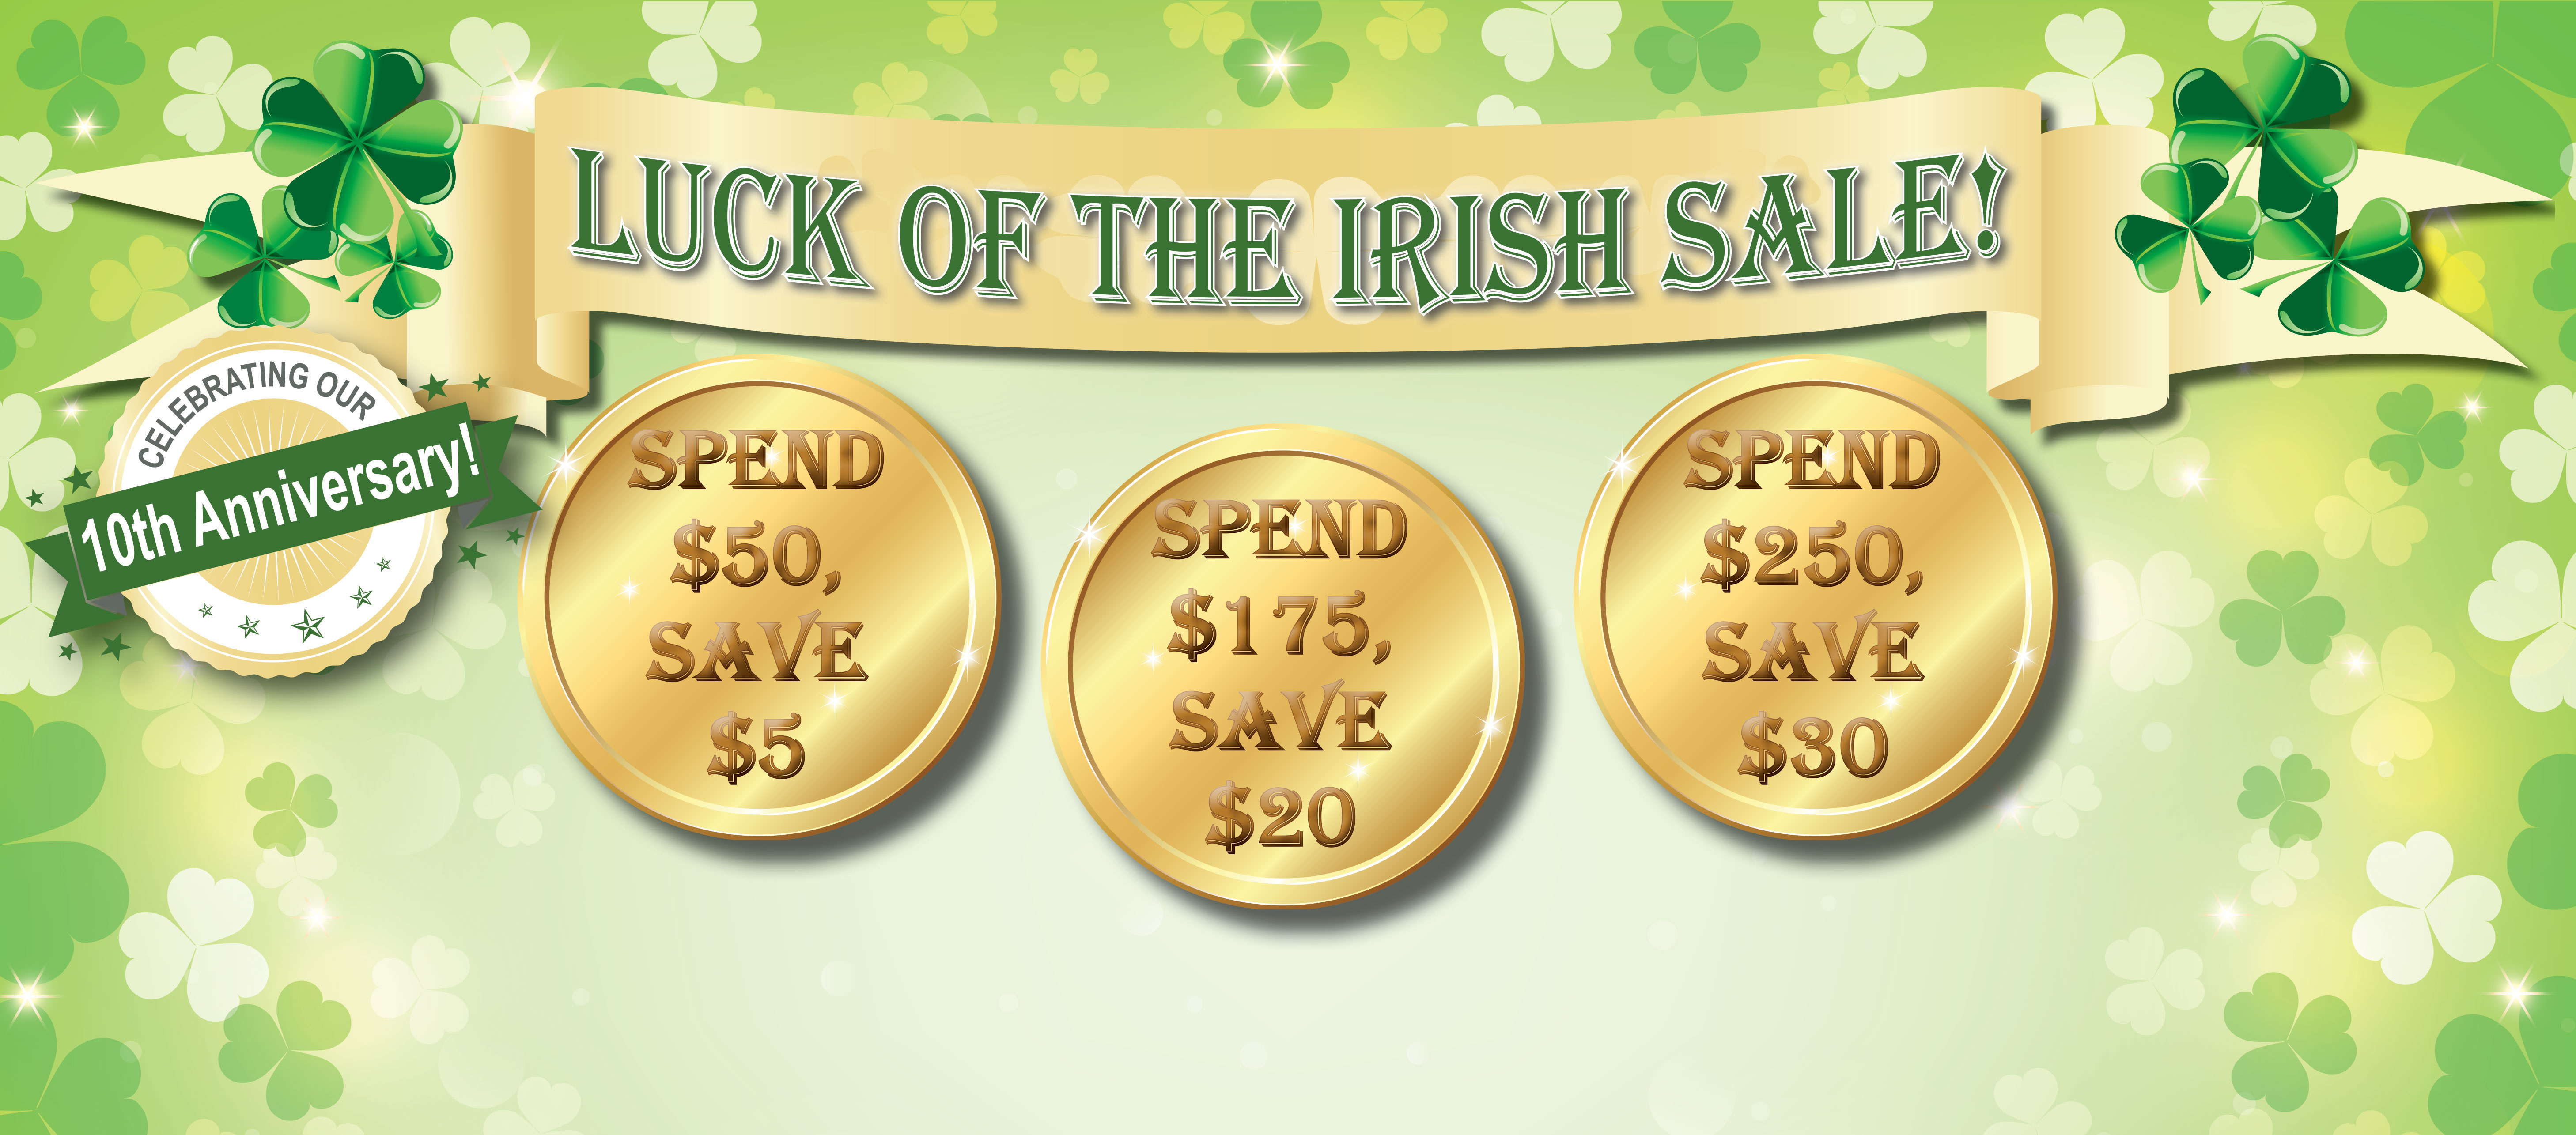 Luck Of The Irish Sale Spend And Save